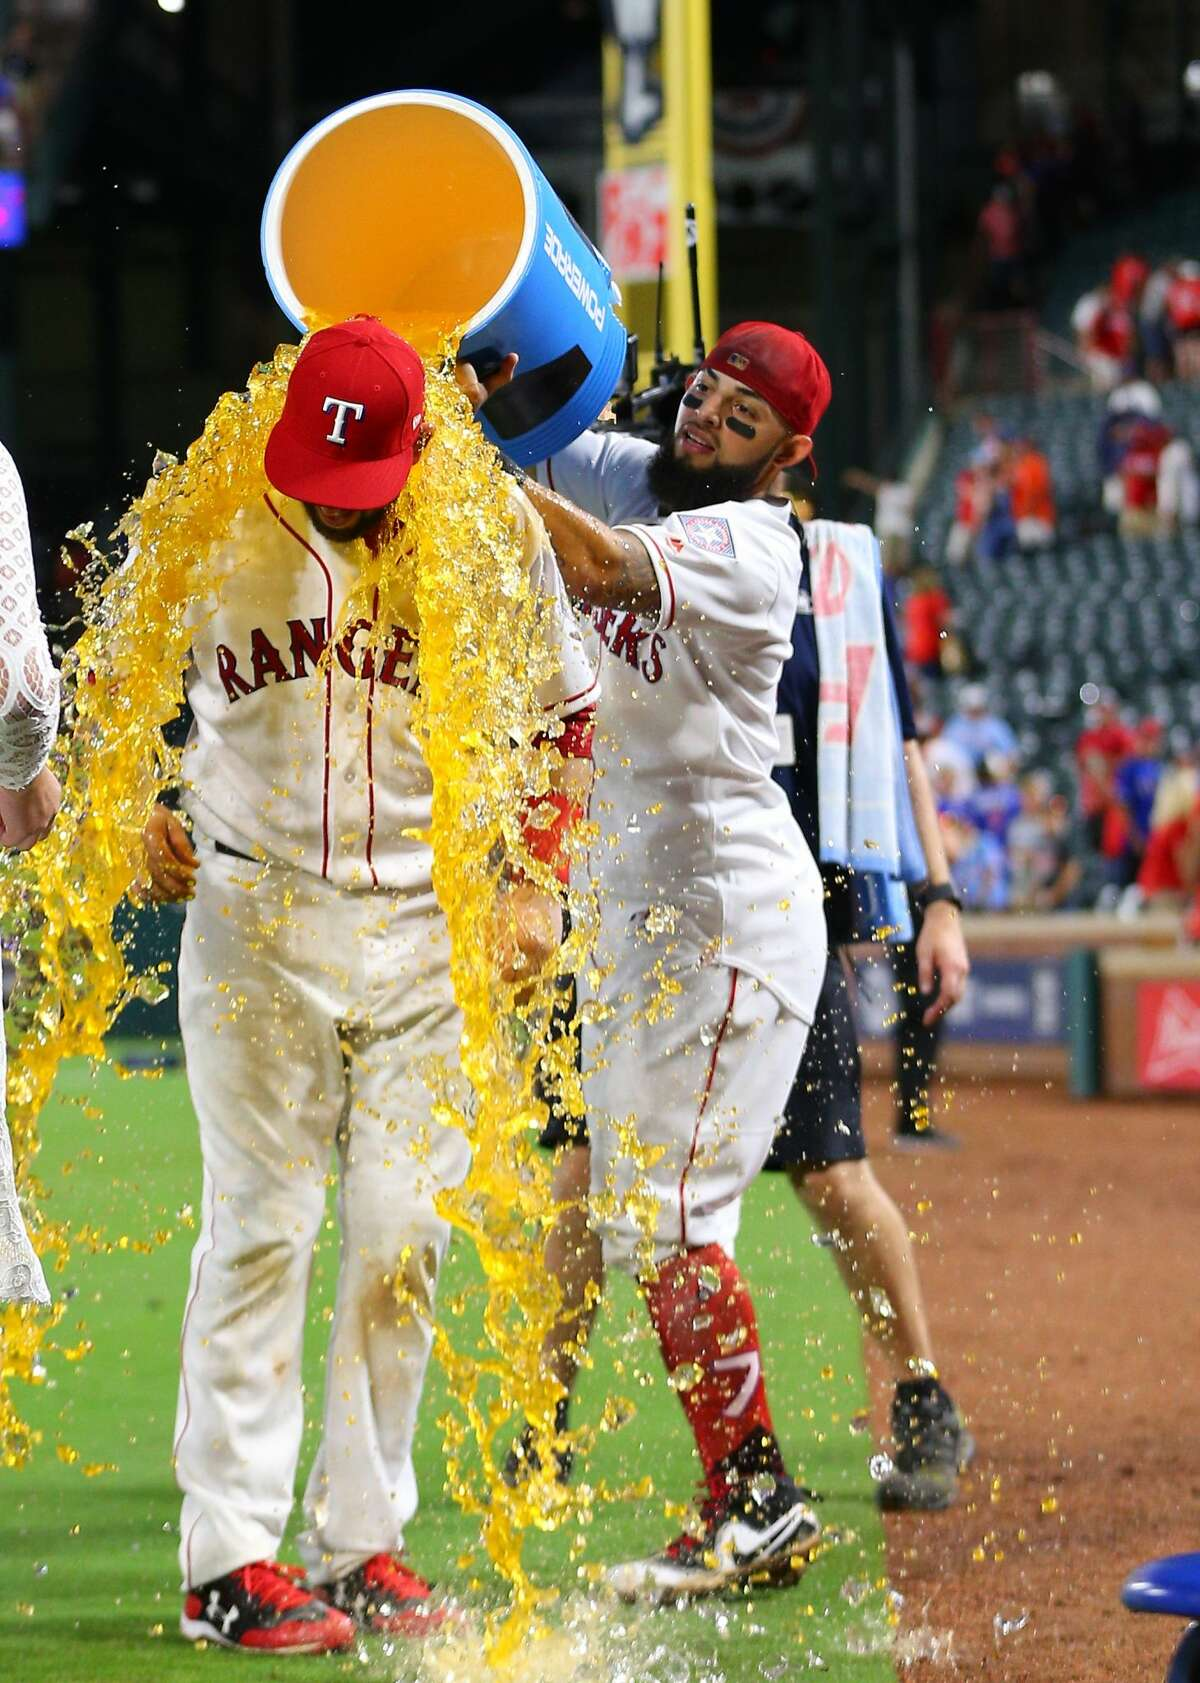 ARLINGTON, TX - AUGUST 12: Brett Nicholas #6 of the Texas Rangers gets the cooler dumped on him by Rougned Odor #12 at the conclusion of the game against the Houston Astros at Globe Life Park in Arlington on August 12, 2017 in Arlington, Texas. (Photo by Rick Yeatts/Getty Images)